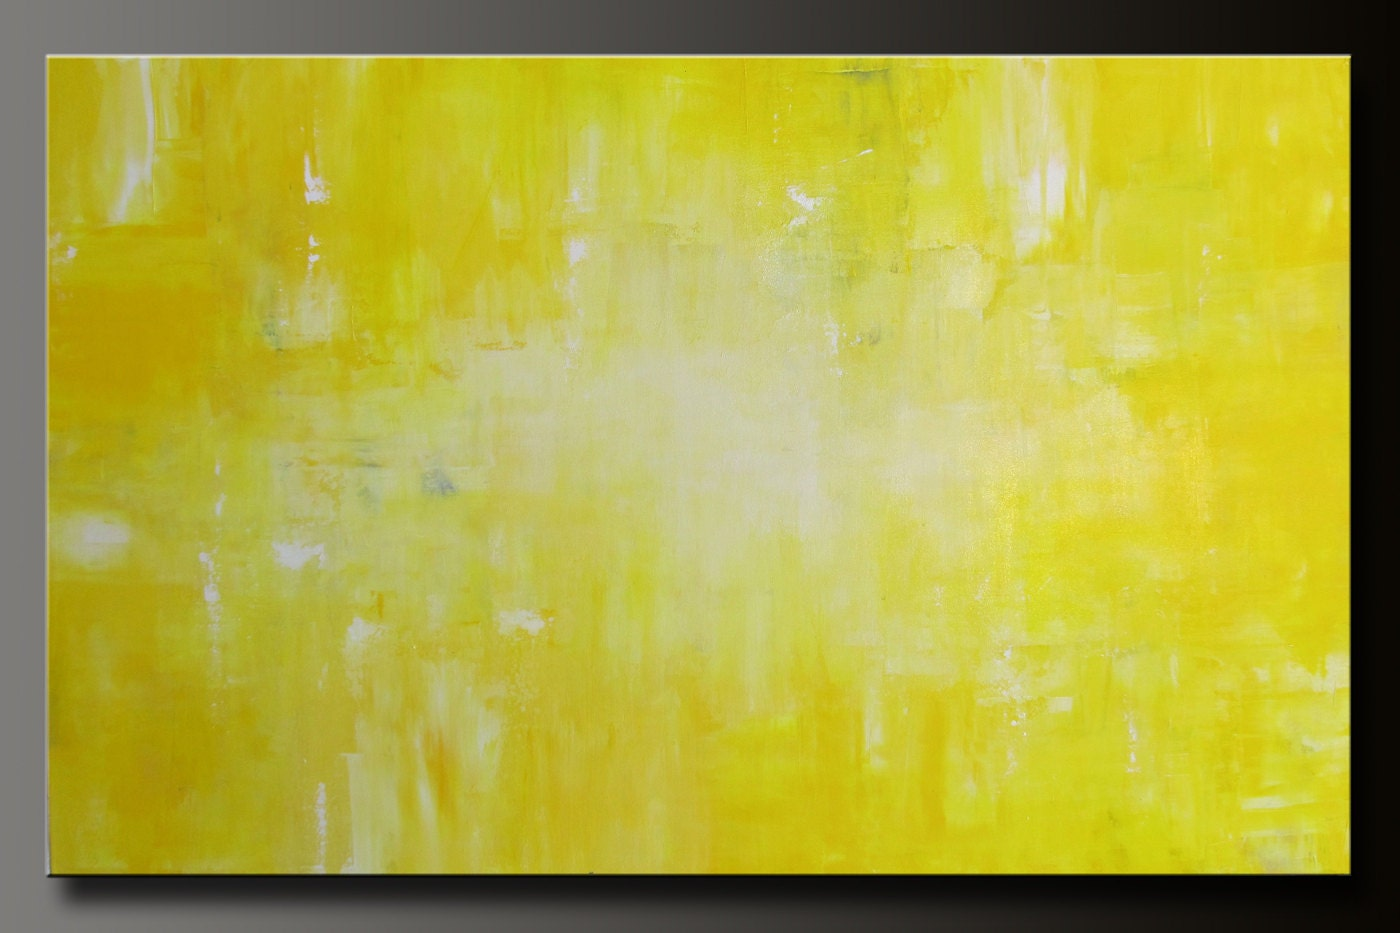 Abstract in Yellow 10 - 48x30 - Abstract Acrylic Painting - Huge - Highly Textured Contemporary Original Wall Art